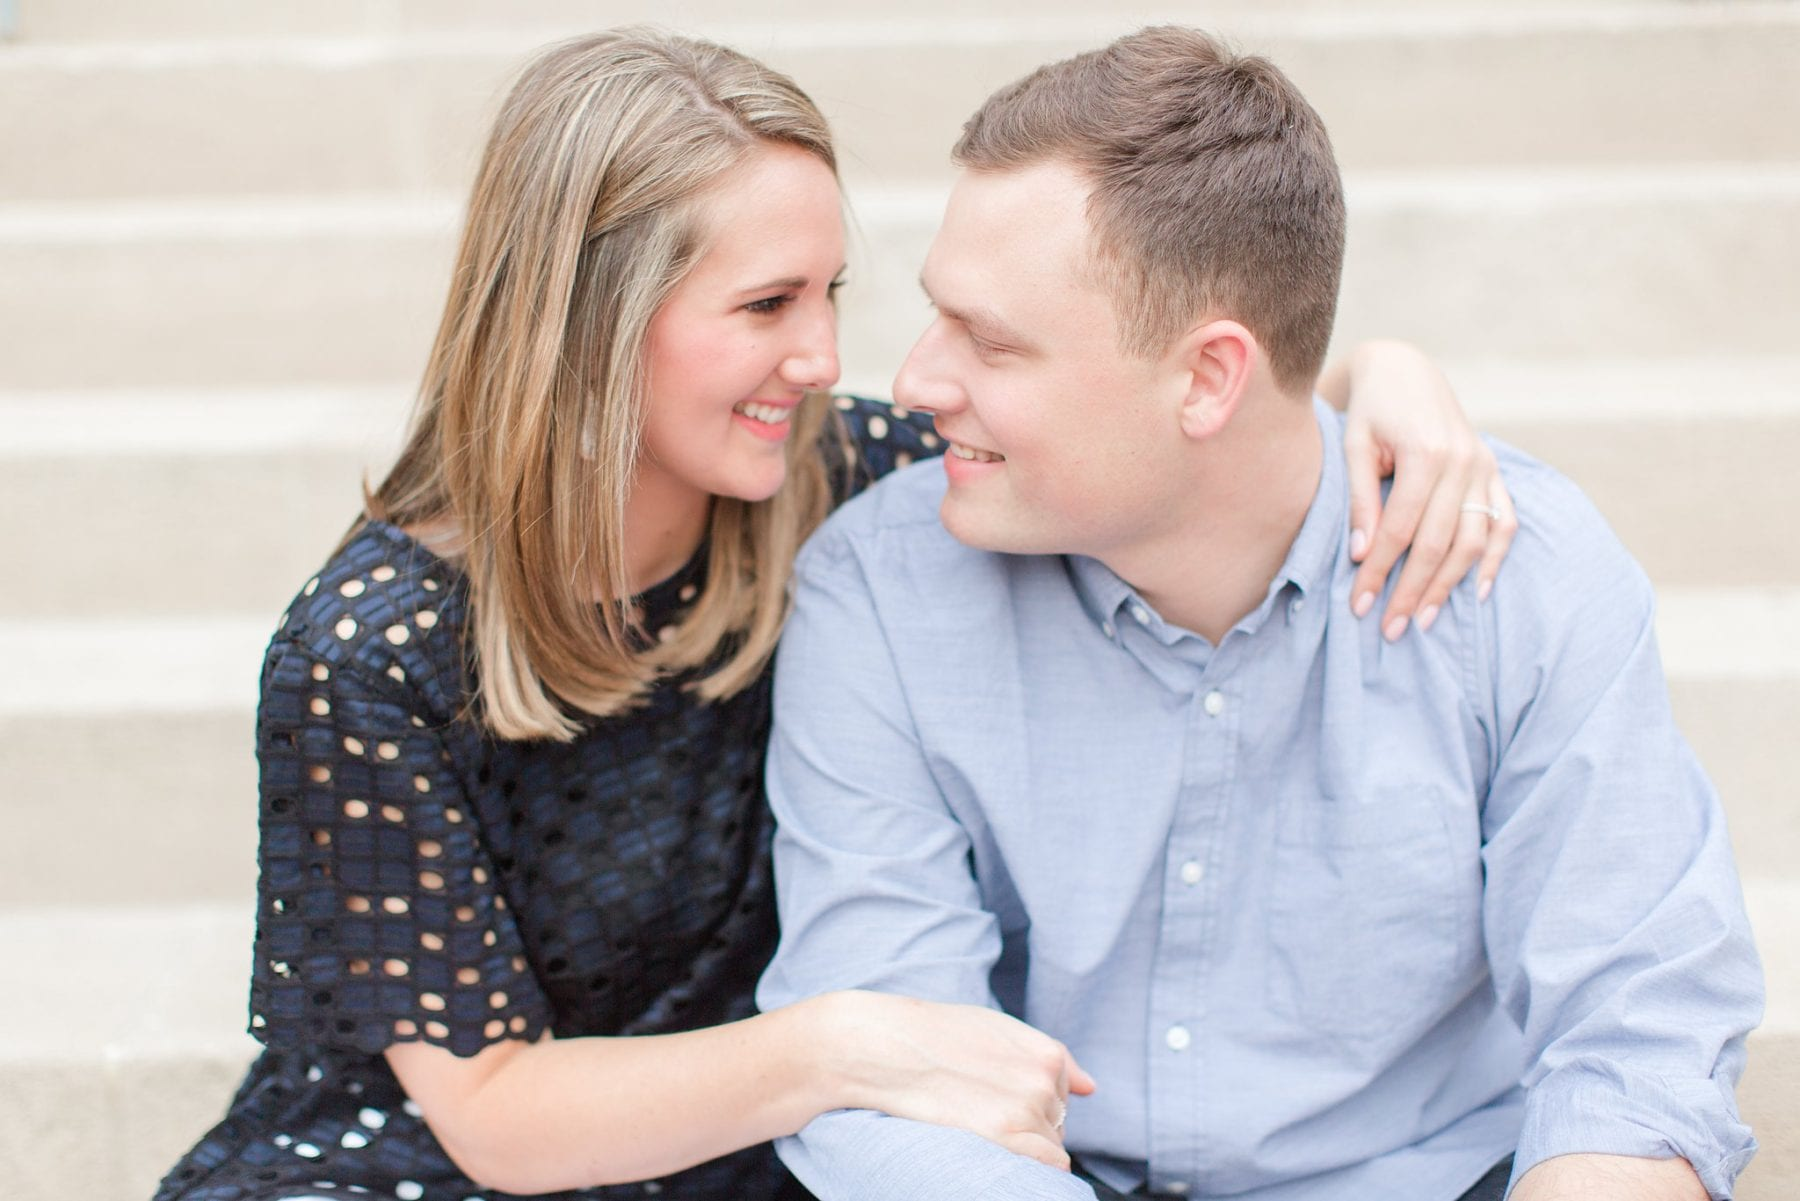 Springtime Old Town Alexandria Engagement Session Matt & Maxie Megan Kelsey Photography-287.jpg